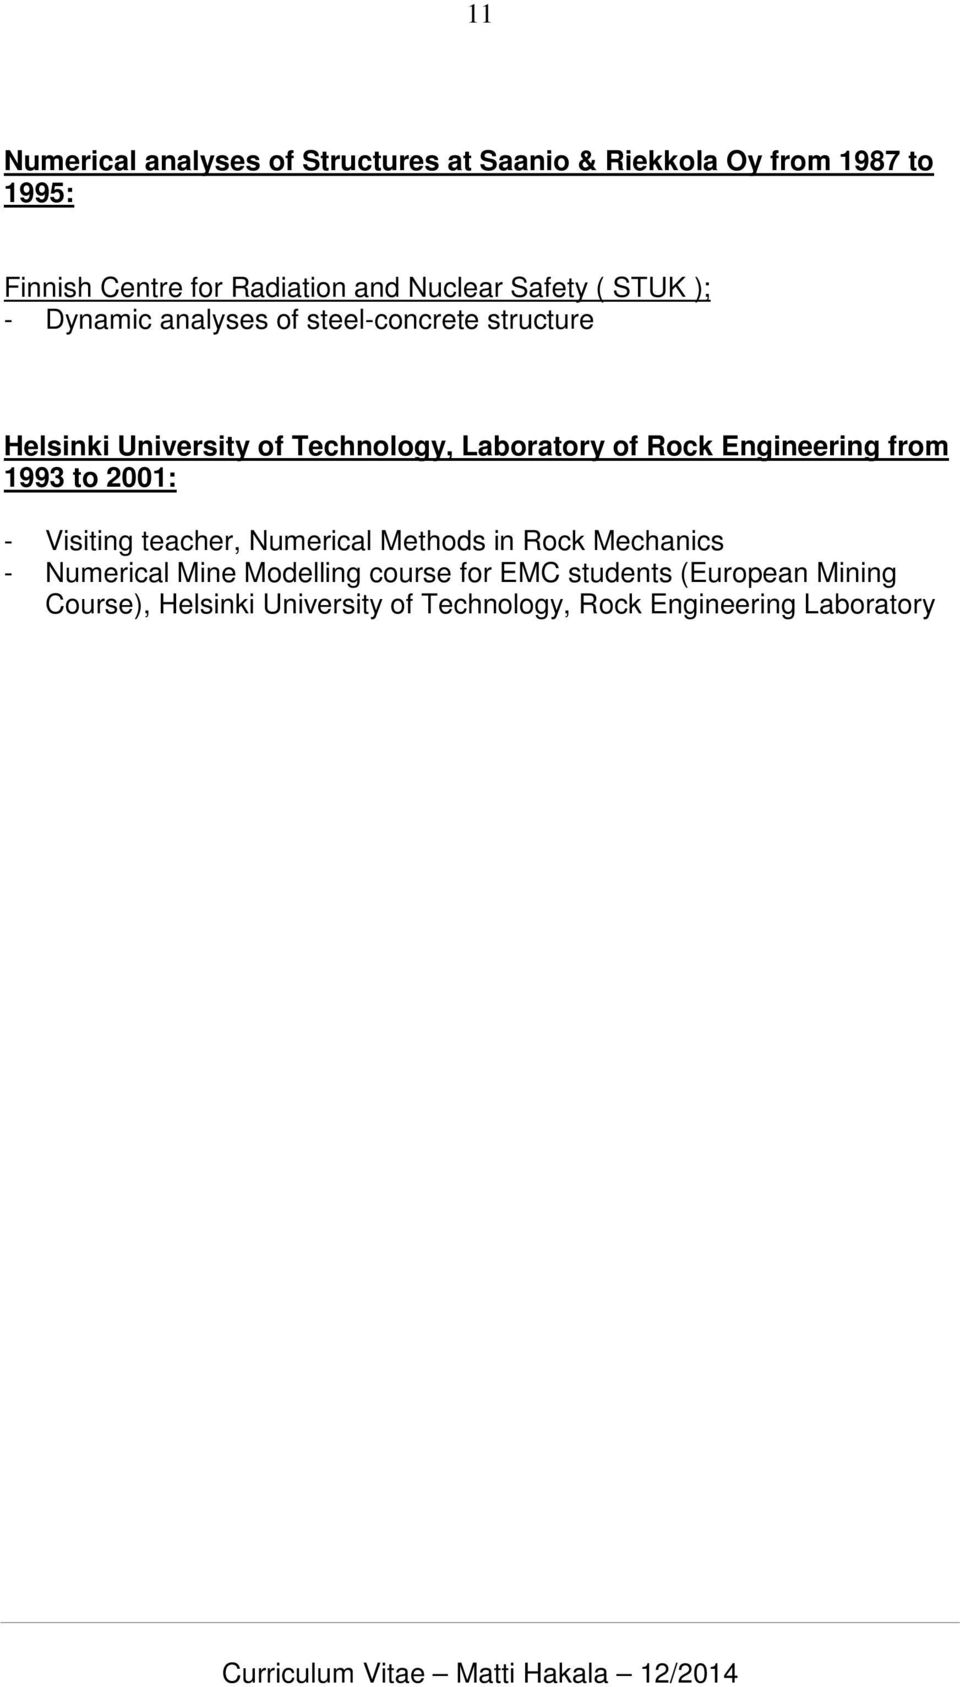 Laboratory of Rock Engineering from 1993 to 2001: - Visiting teacher, Numerical Methods in Rock Mechanics -